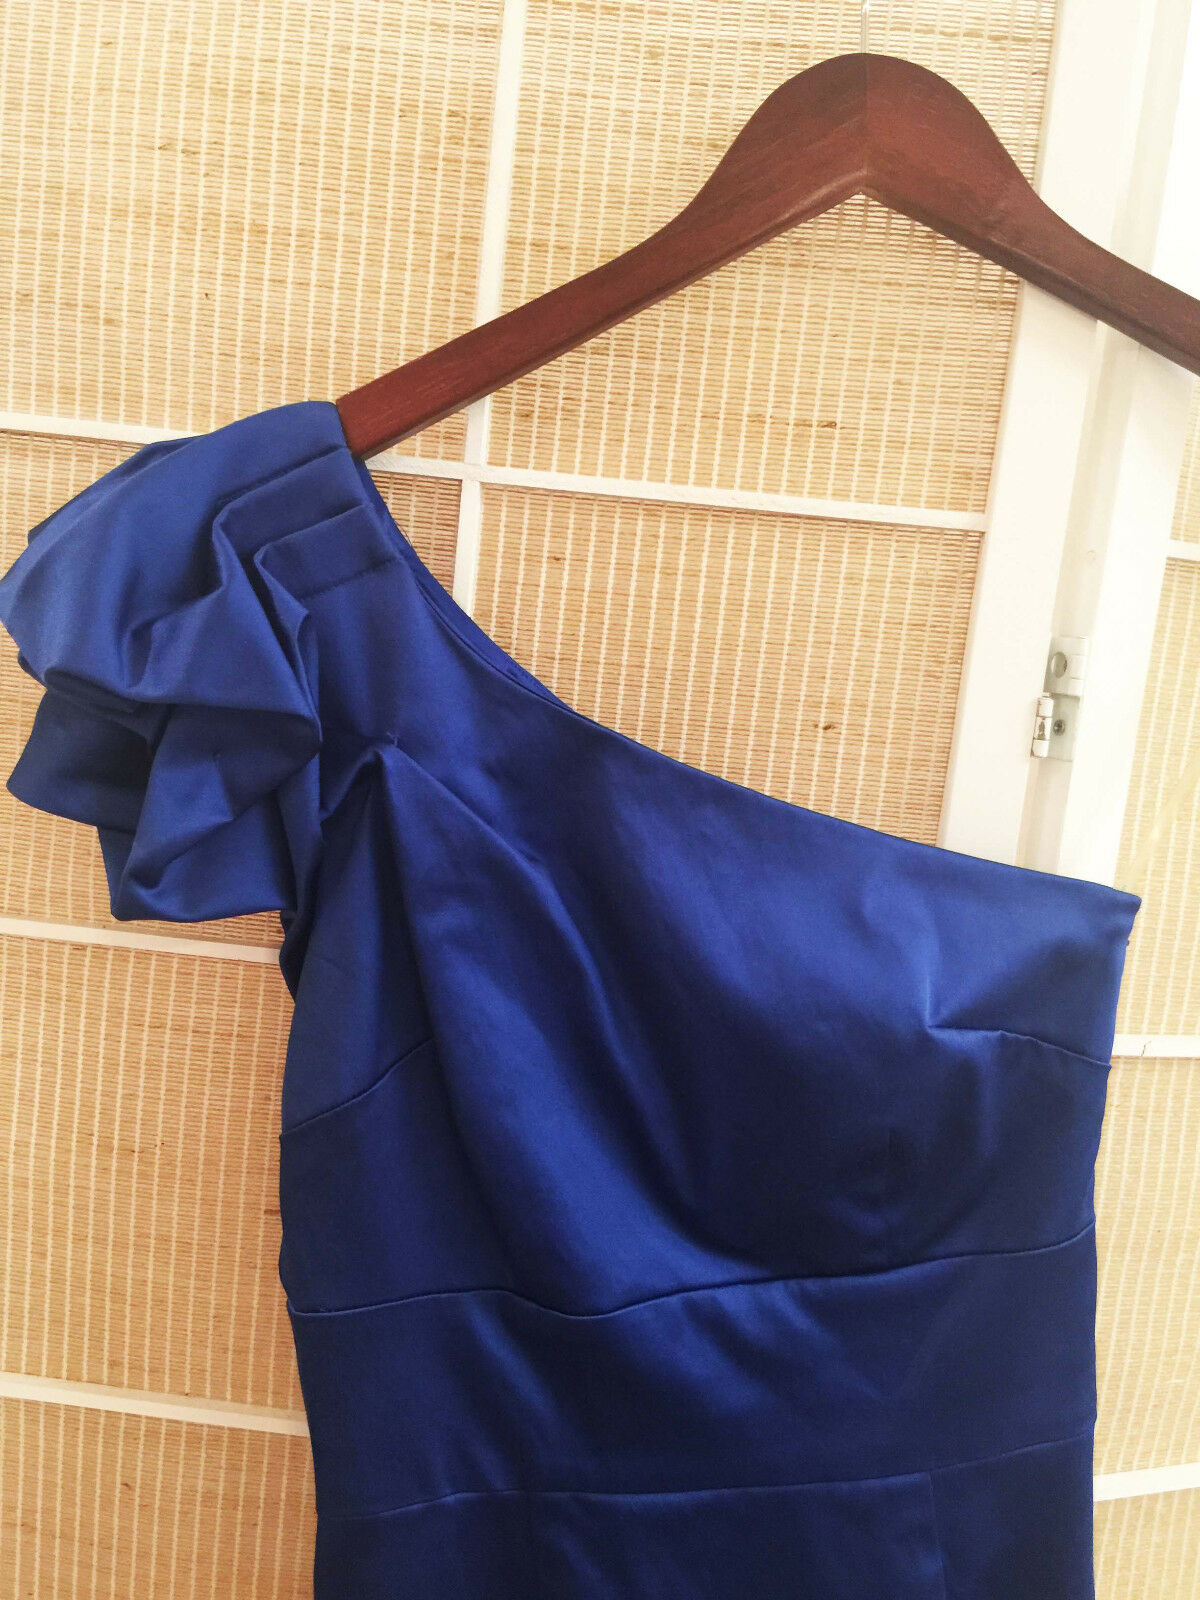 Marciano one shoulder Robe. Colbalt bleu.NWT. Marciano one shoulder Robe. Colb